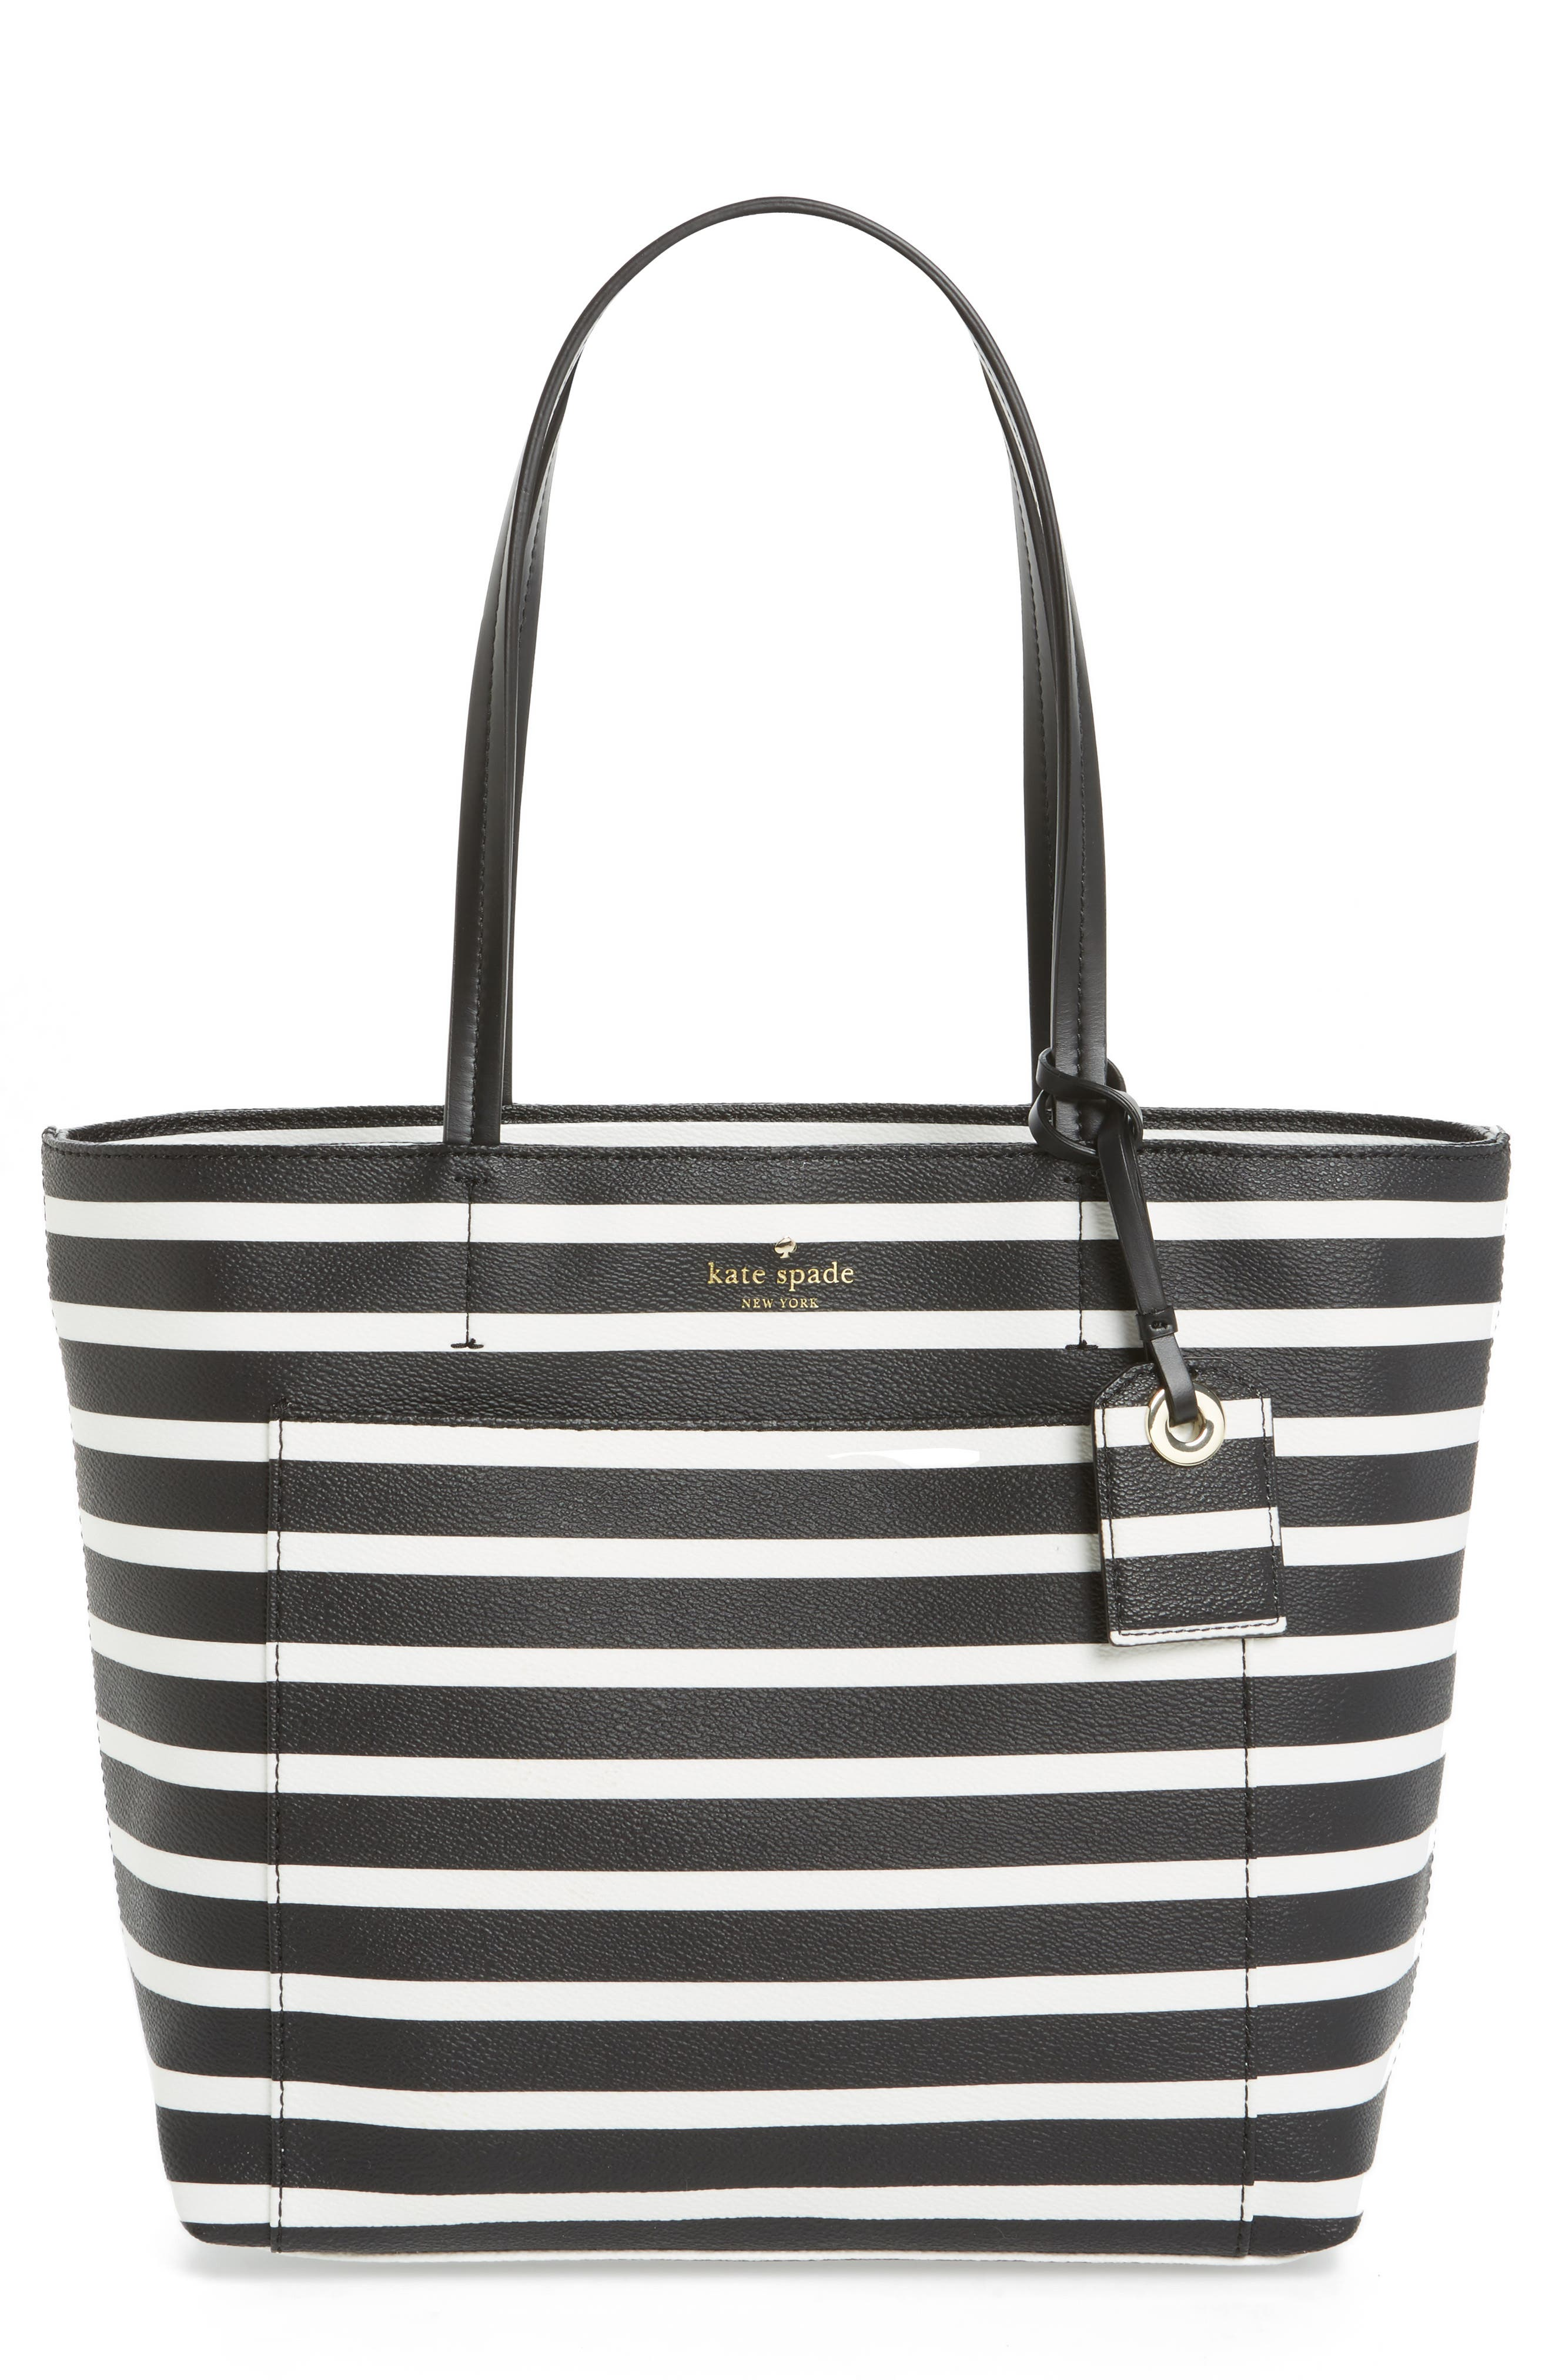 hyde lane - small riley faux leather tote,                         Main,                         color, Black/ Off White